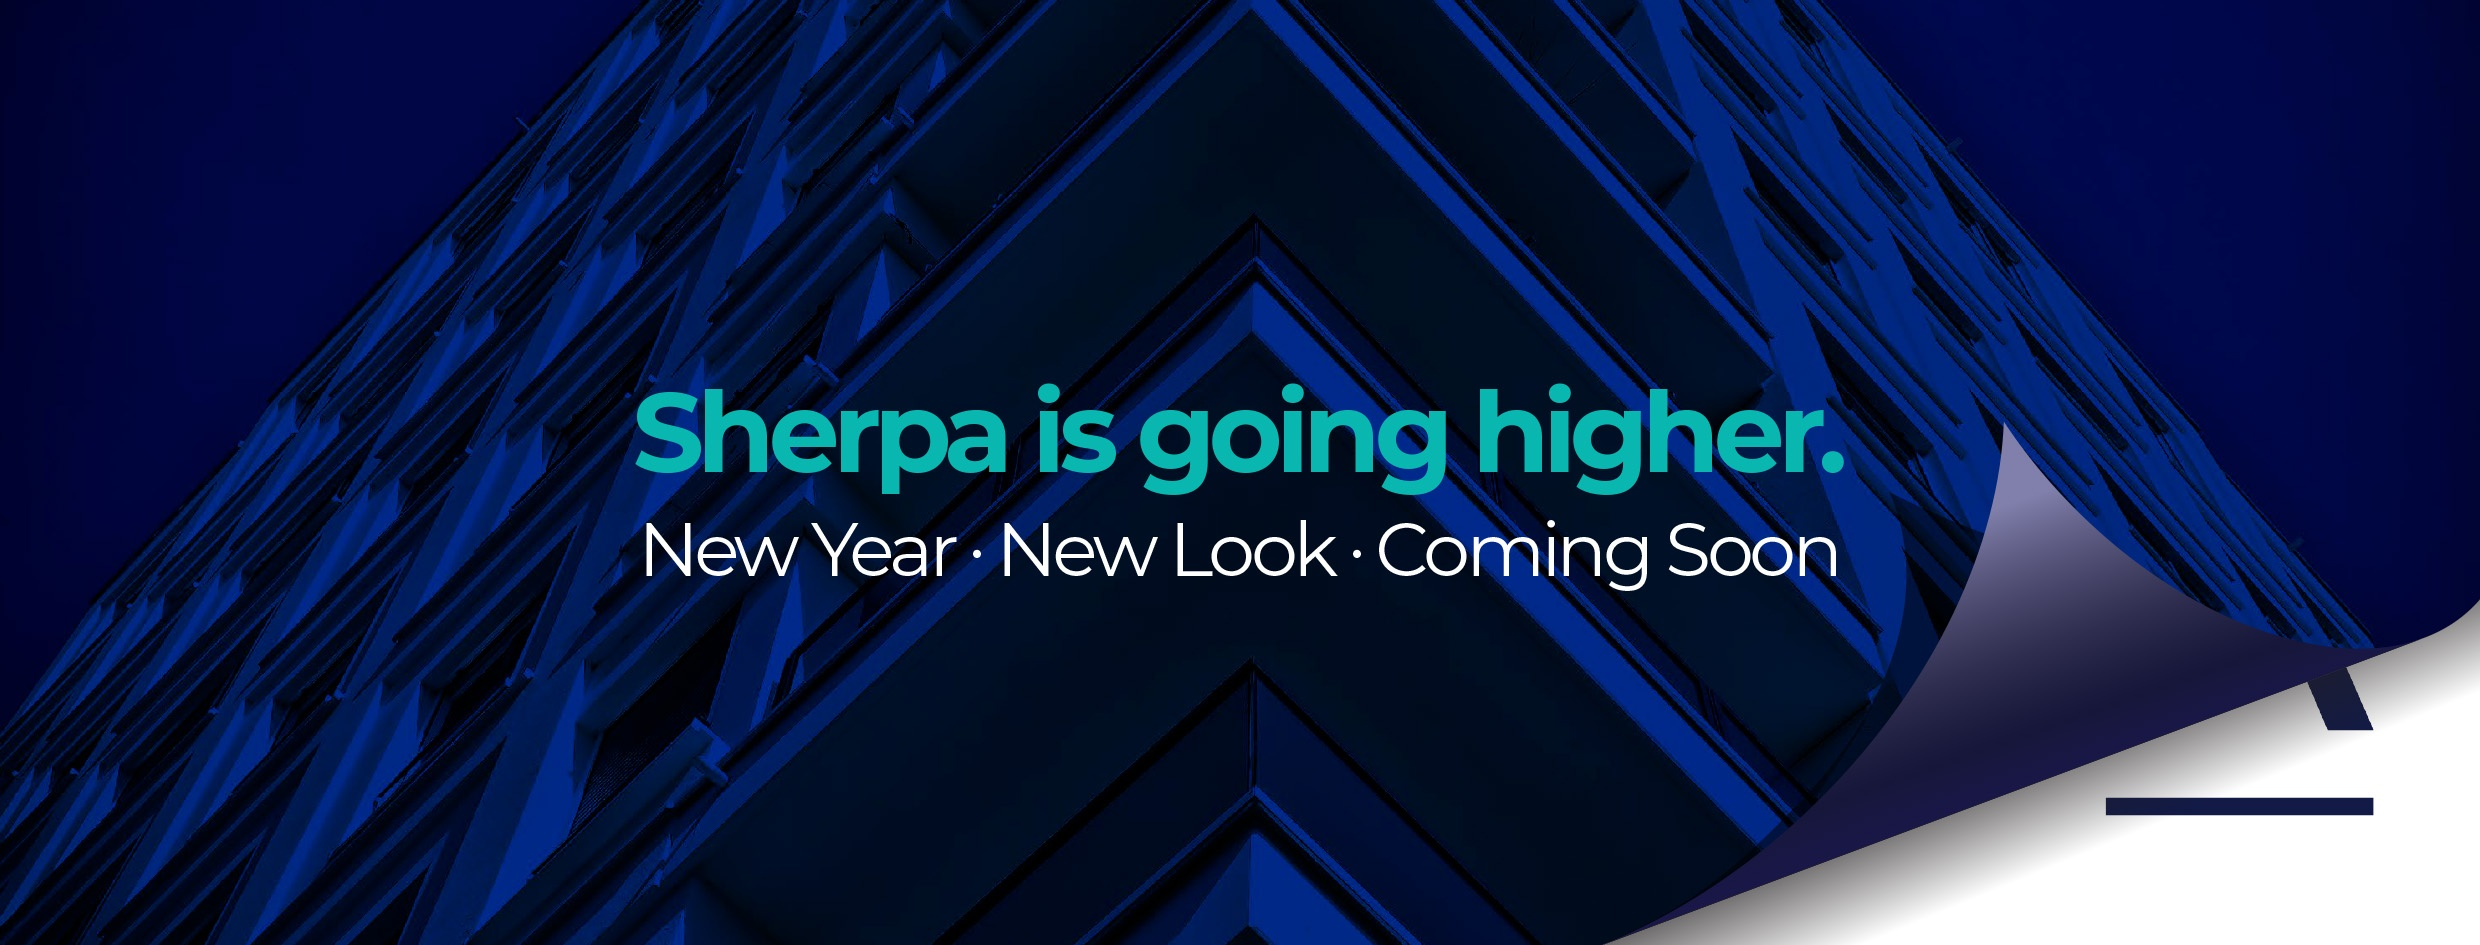 Sherpa is going higher...new look coming soon!